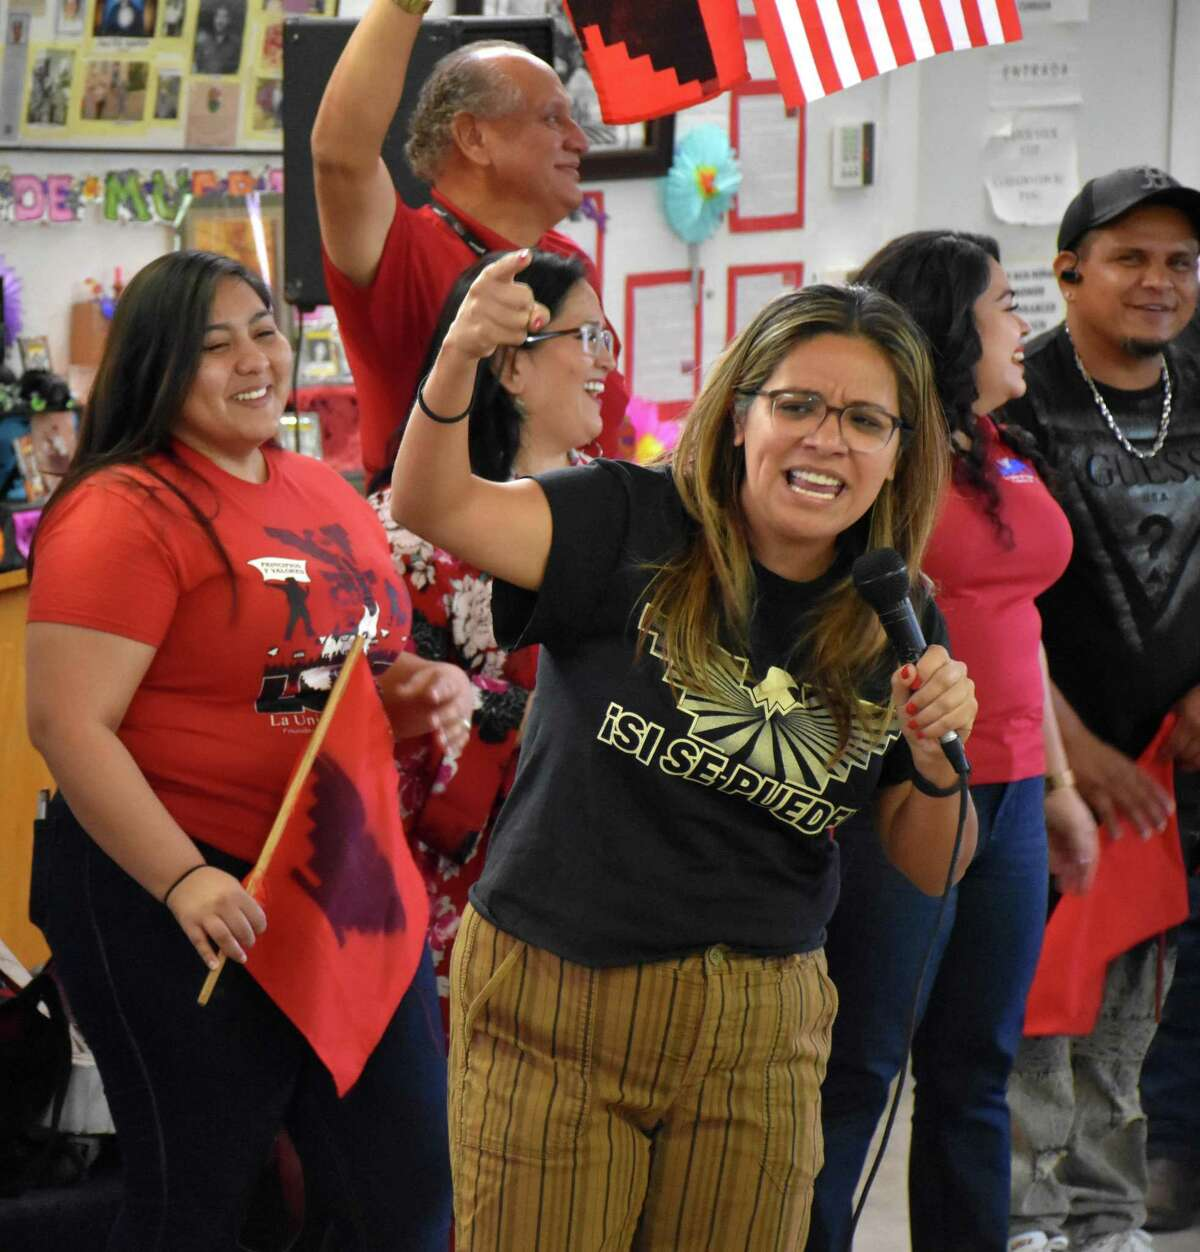 """Comedian Cristela Alonzo, who serves on the board of La Union Del Pueblo Entero, visits members and staff in San Juan, Texas. LUPE, a community union founded by labor leaders Cesar Chavez and Dolores Huerta, has set up a fund for farmworkers, who are deemed """"essential workers,"""" but are not eligible for stimulus funds."""